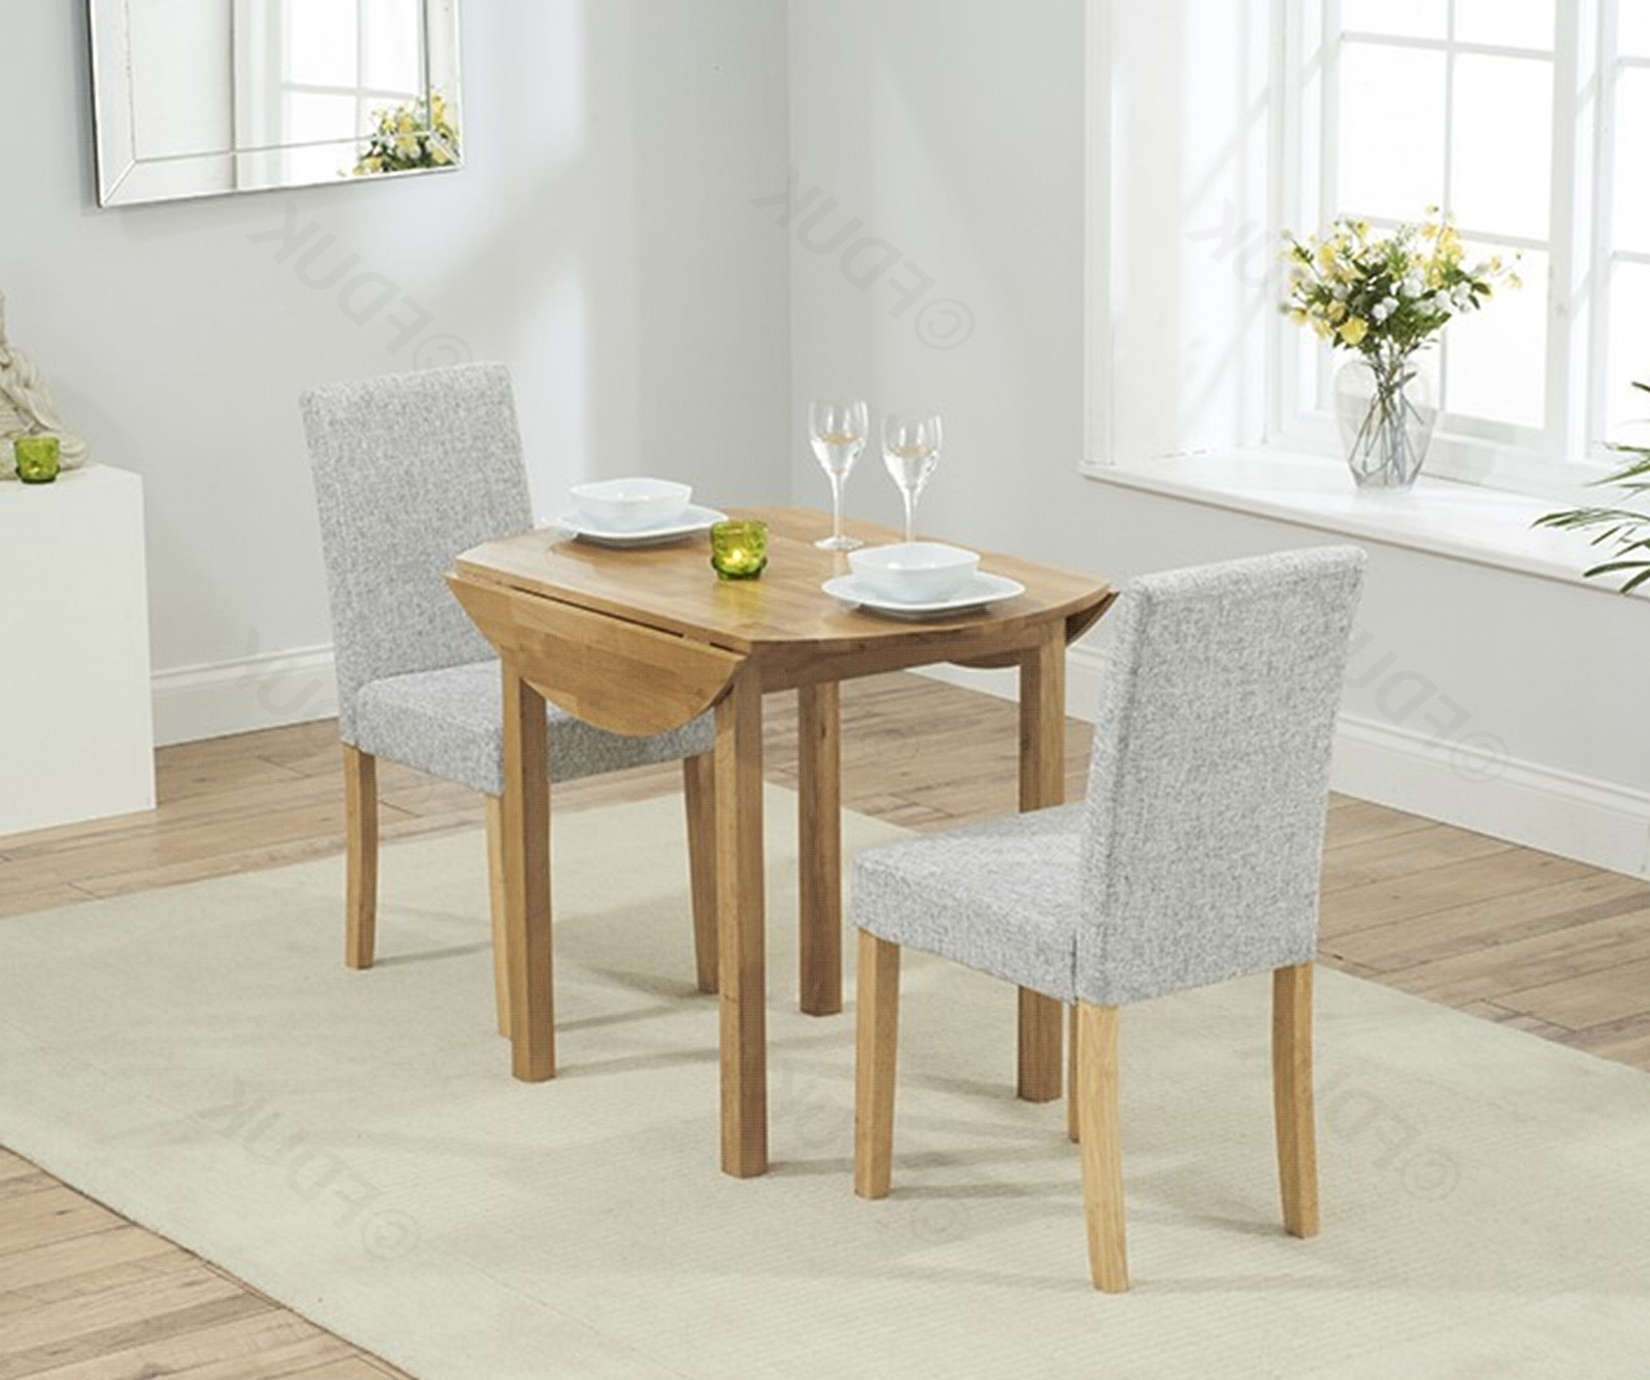 Promo Oak Round Extending Dining Table With 2 Within Round Extending Dining Tables Sets (View 9 of 25)